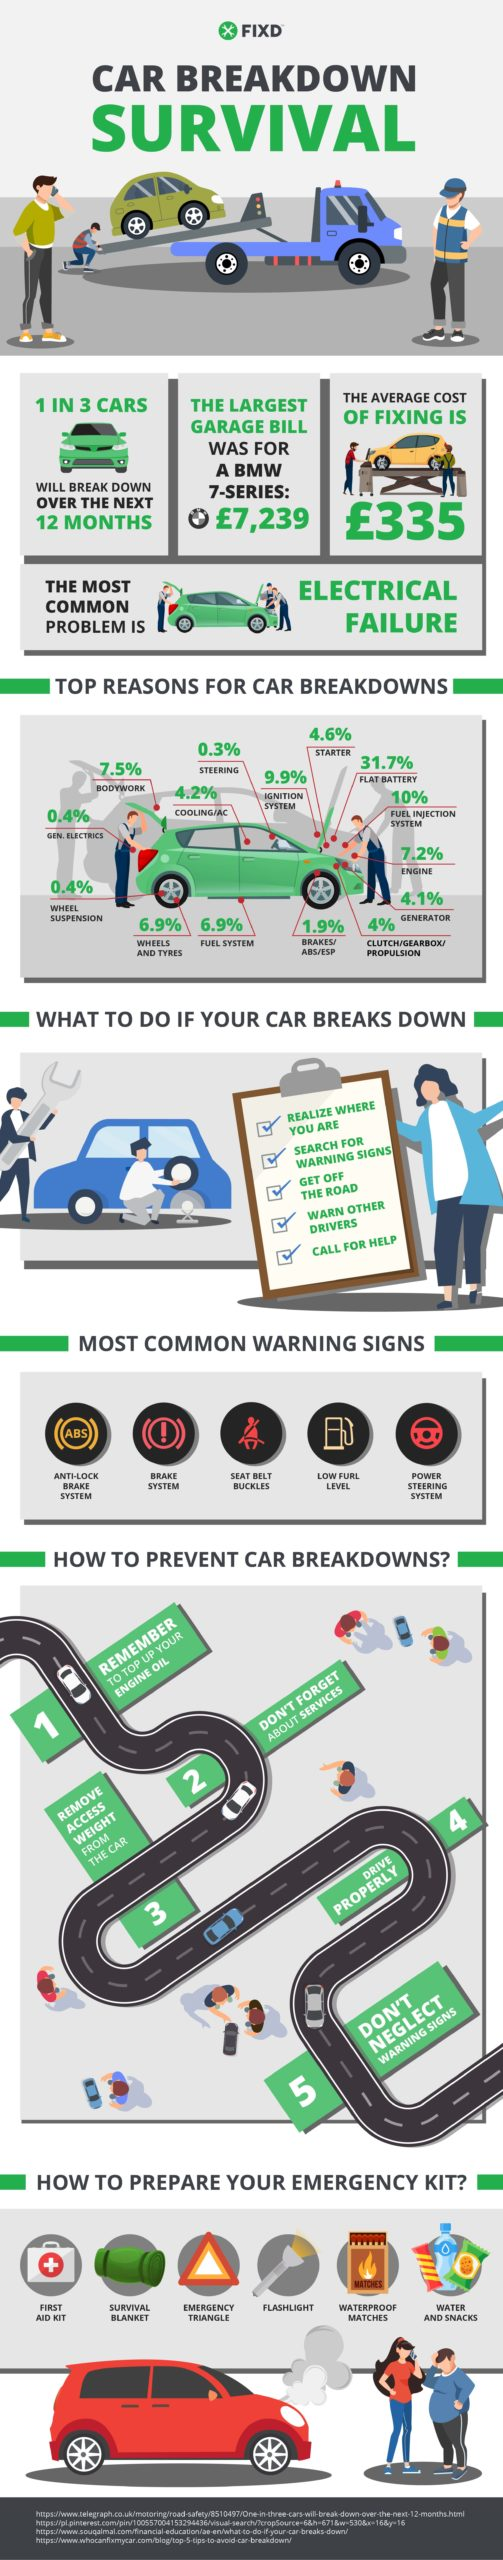 FIXD Car Breakdown Survival Infographic. FIXD Car Sensor and Diagnostic App For Monitoring. App to Monitor and Understand Your Car.